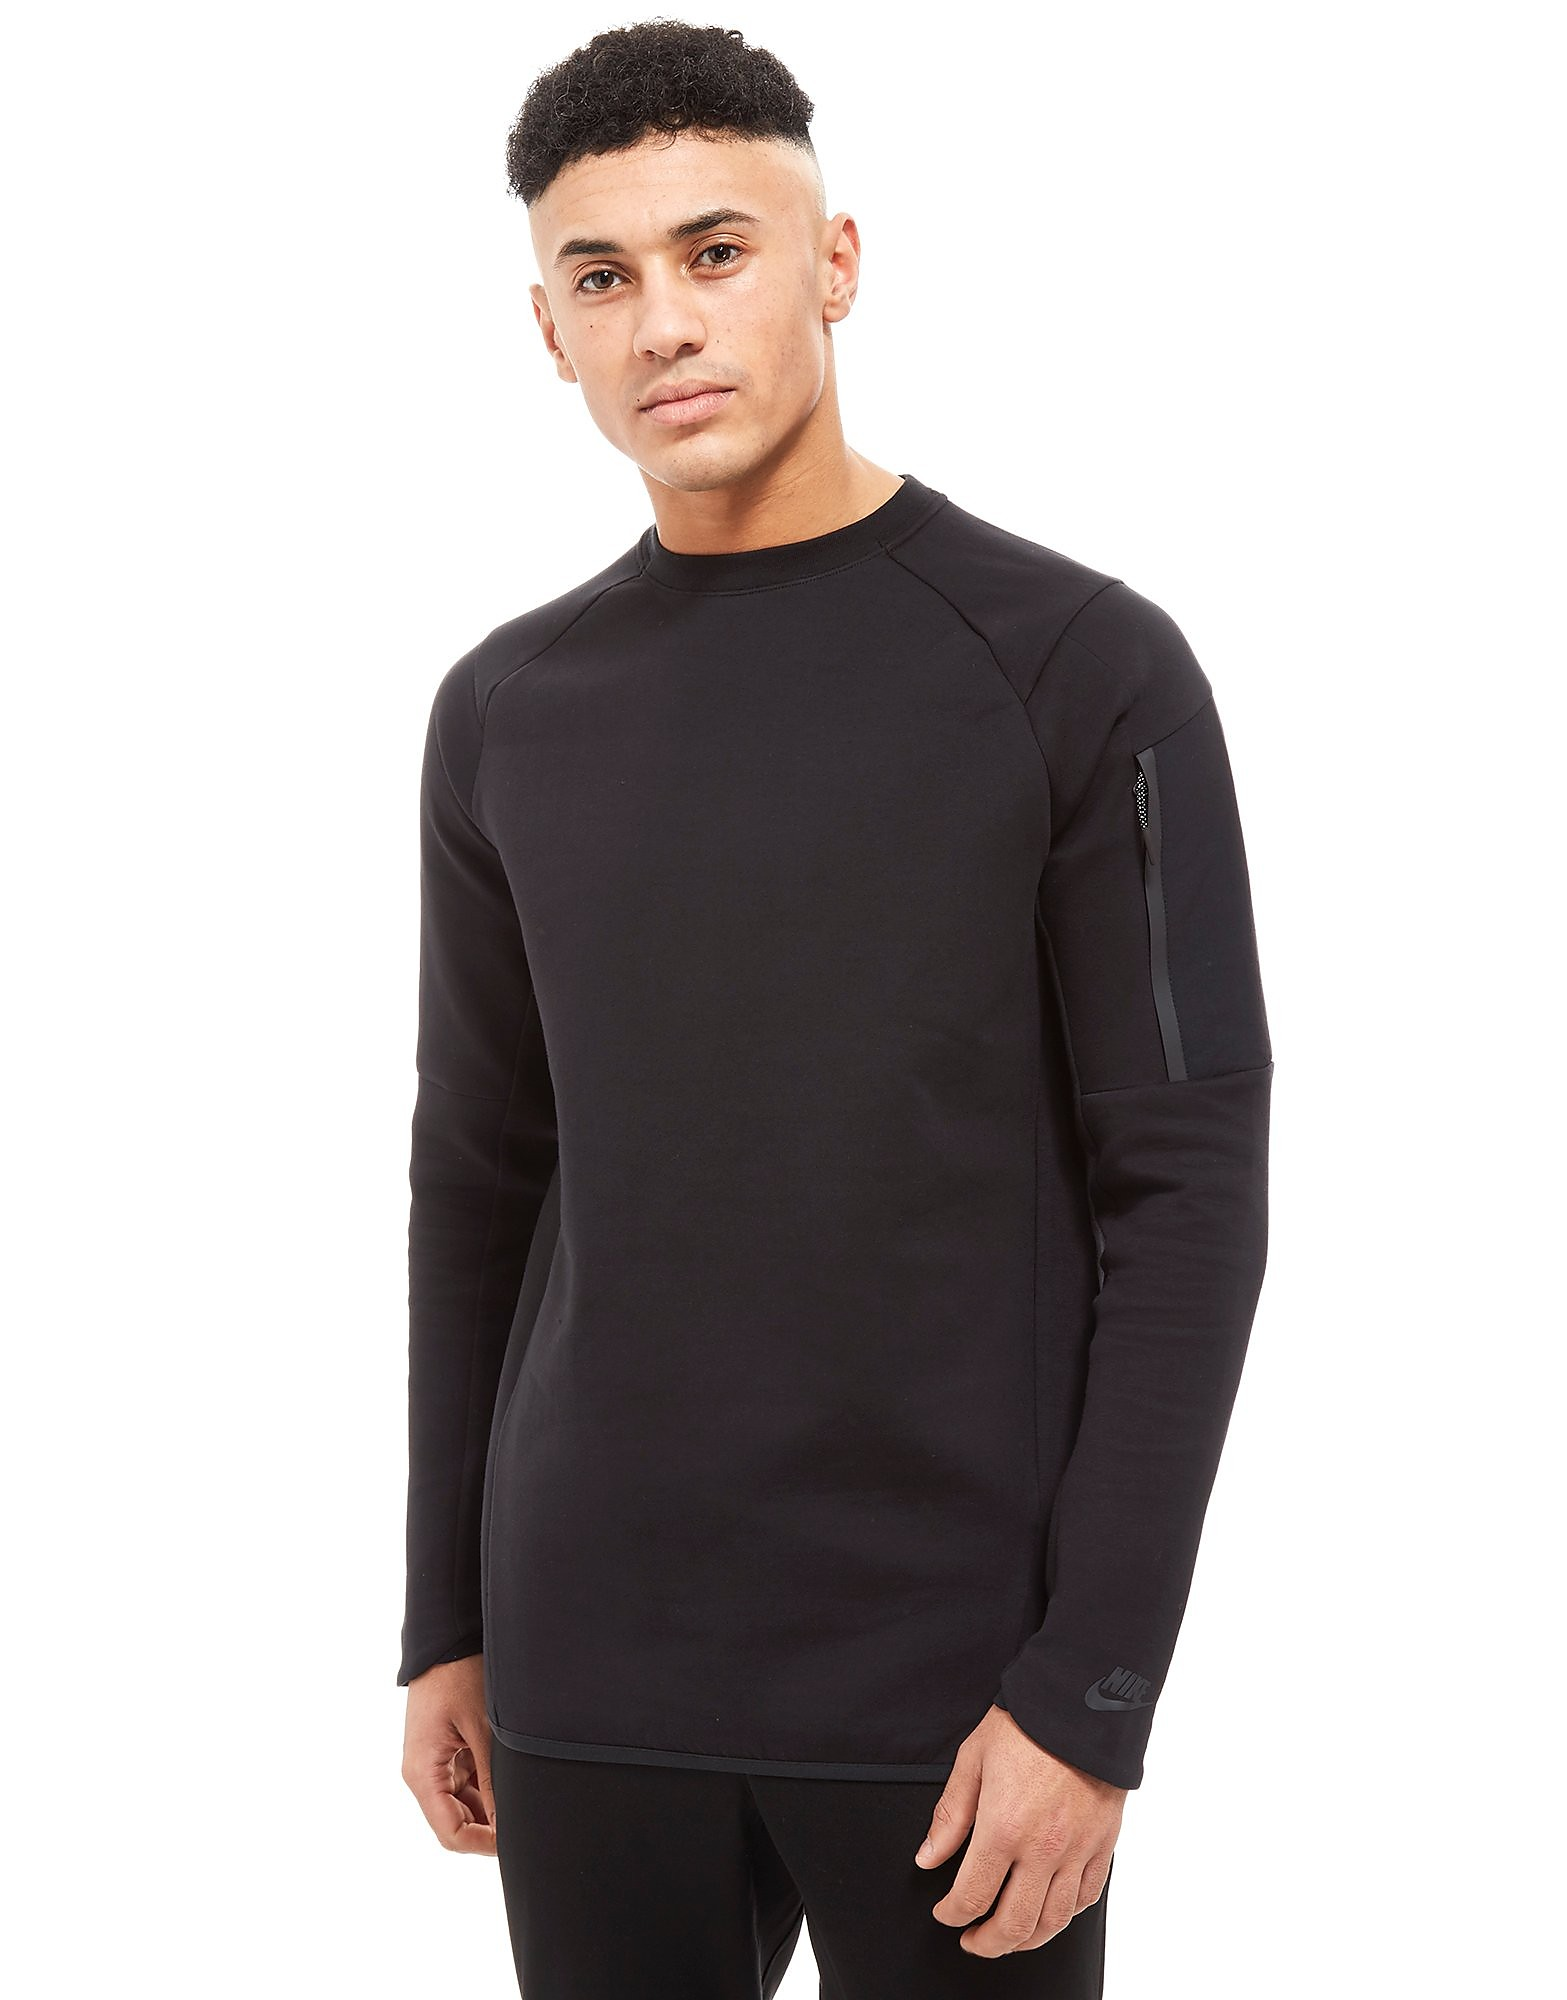 Nike Tech 2.0 Fleece Crew Sweatshirt